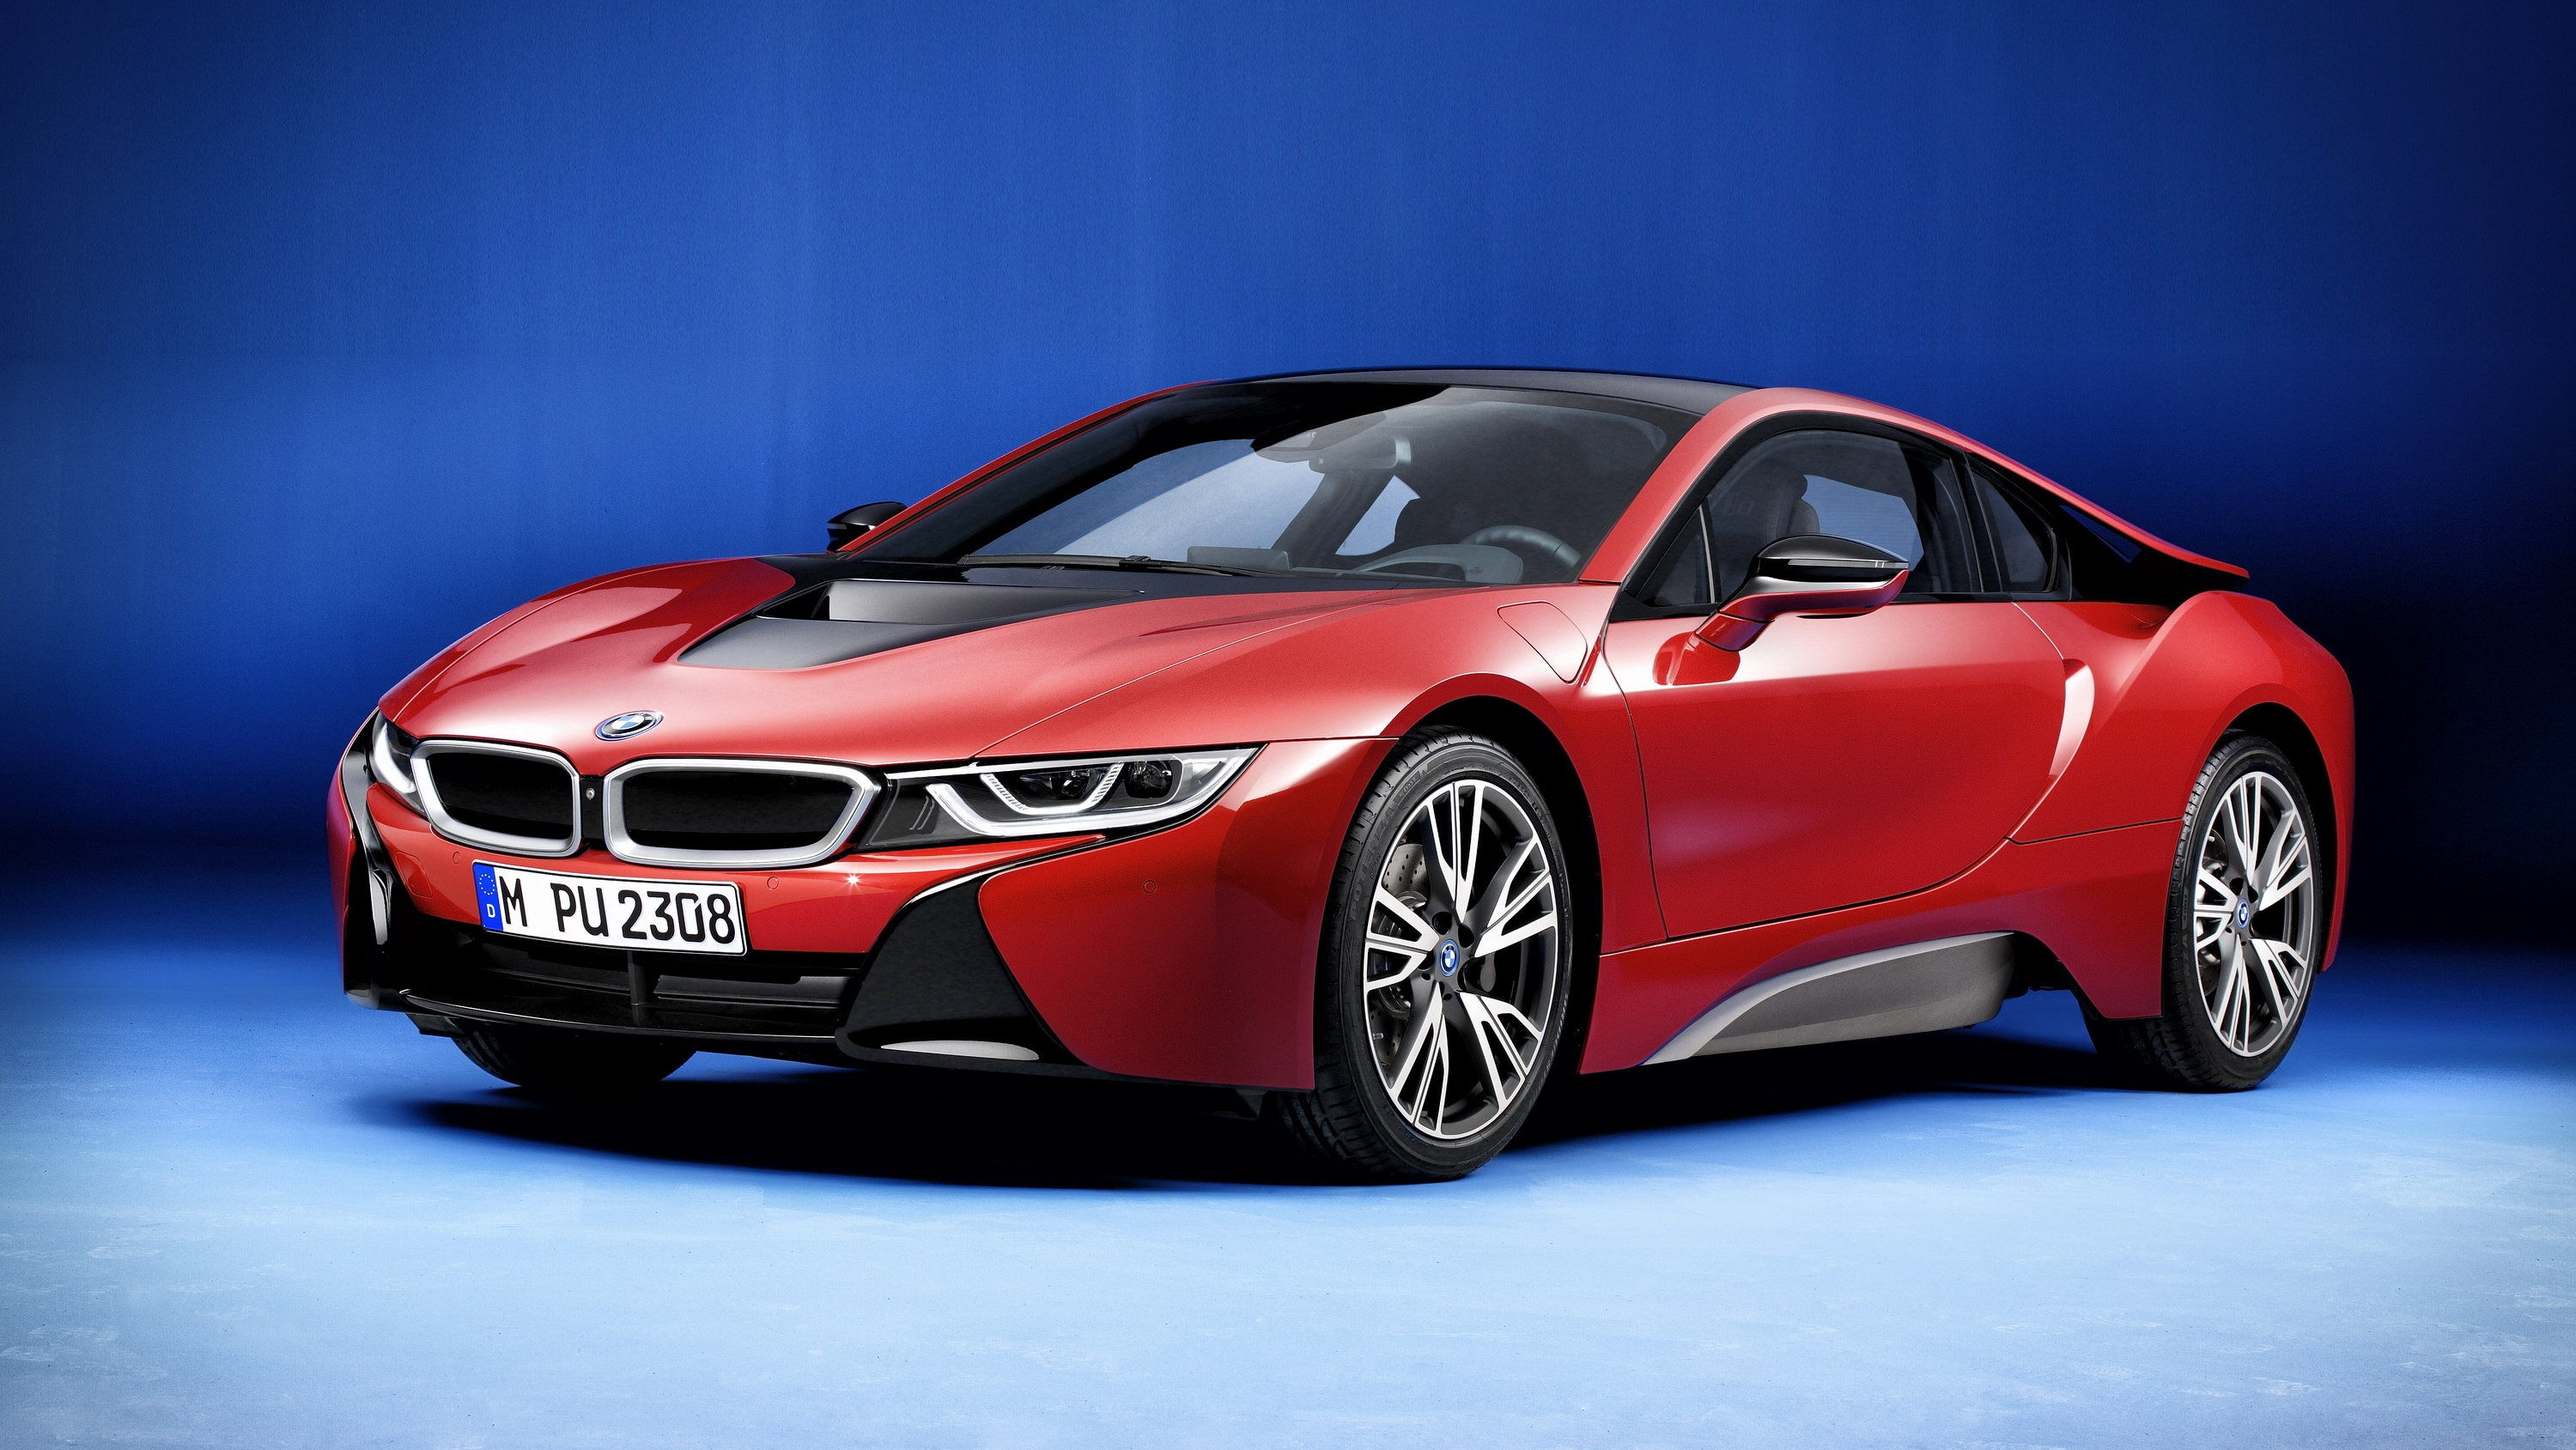 2016 Bmw I8 Protonic Red Edition Top Speed